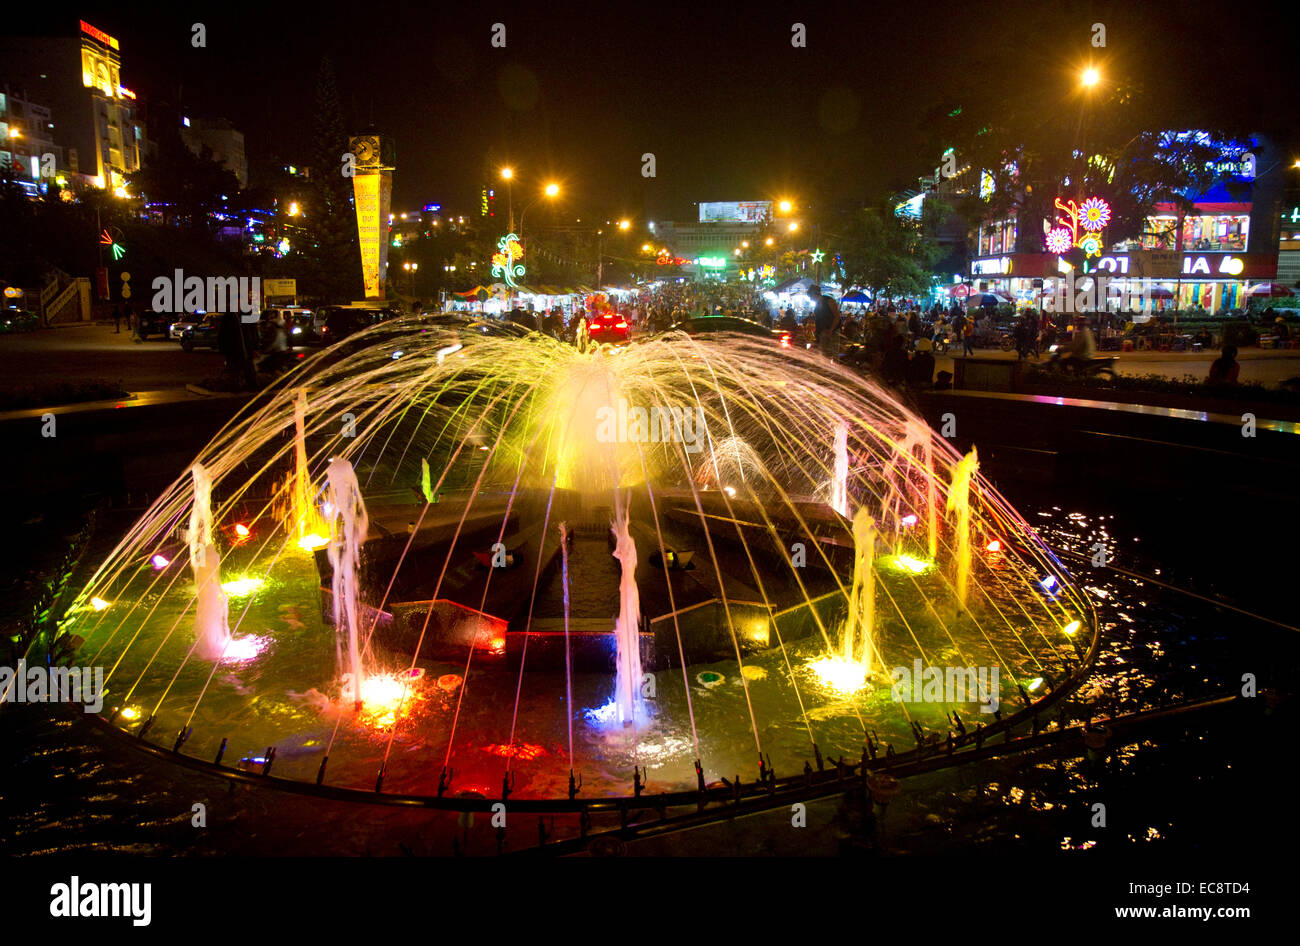 Water fountain lit with colored lights at night in Da Lat, Vietnam. - Stock Image